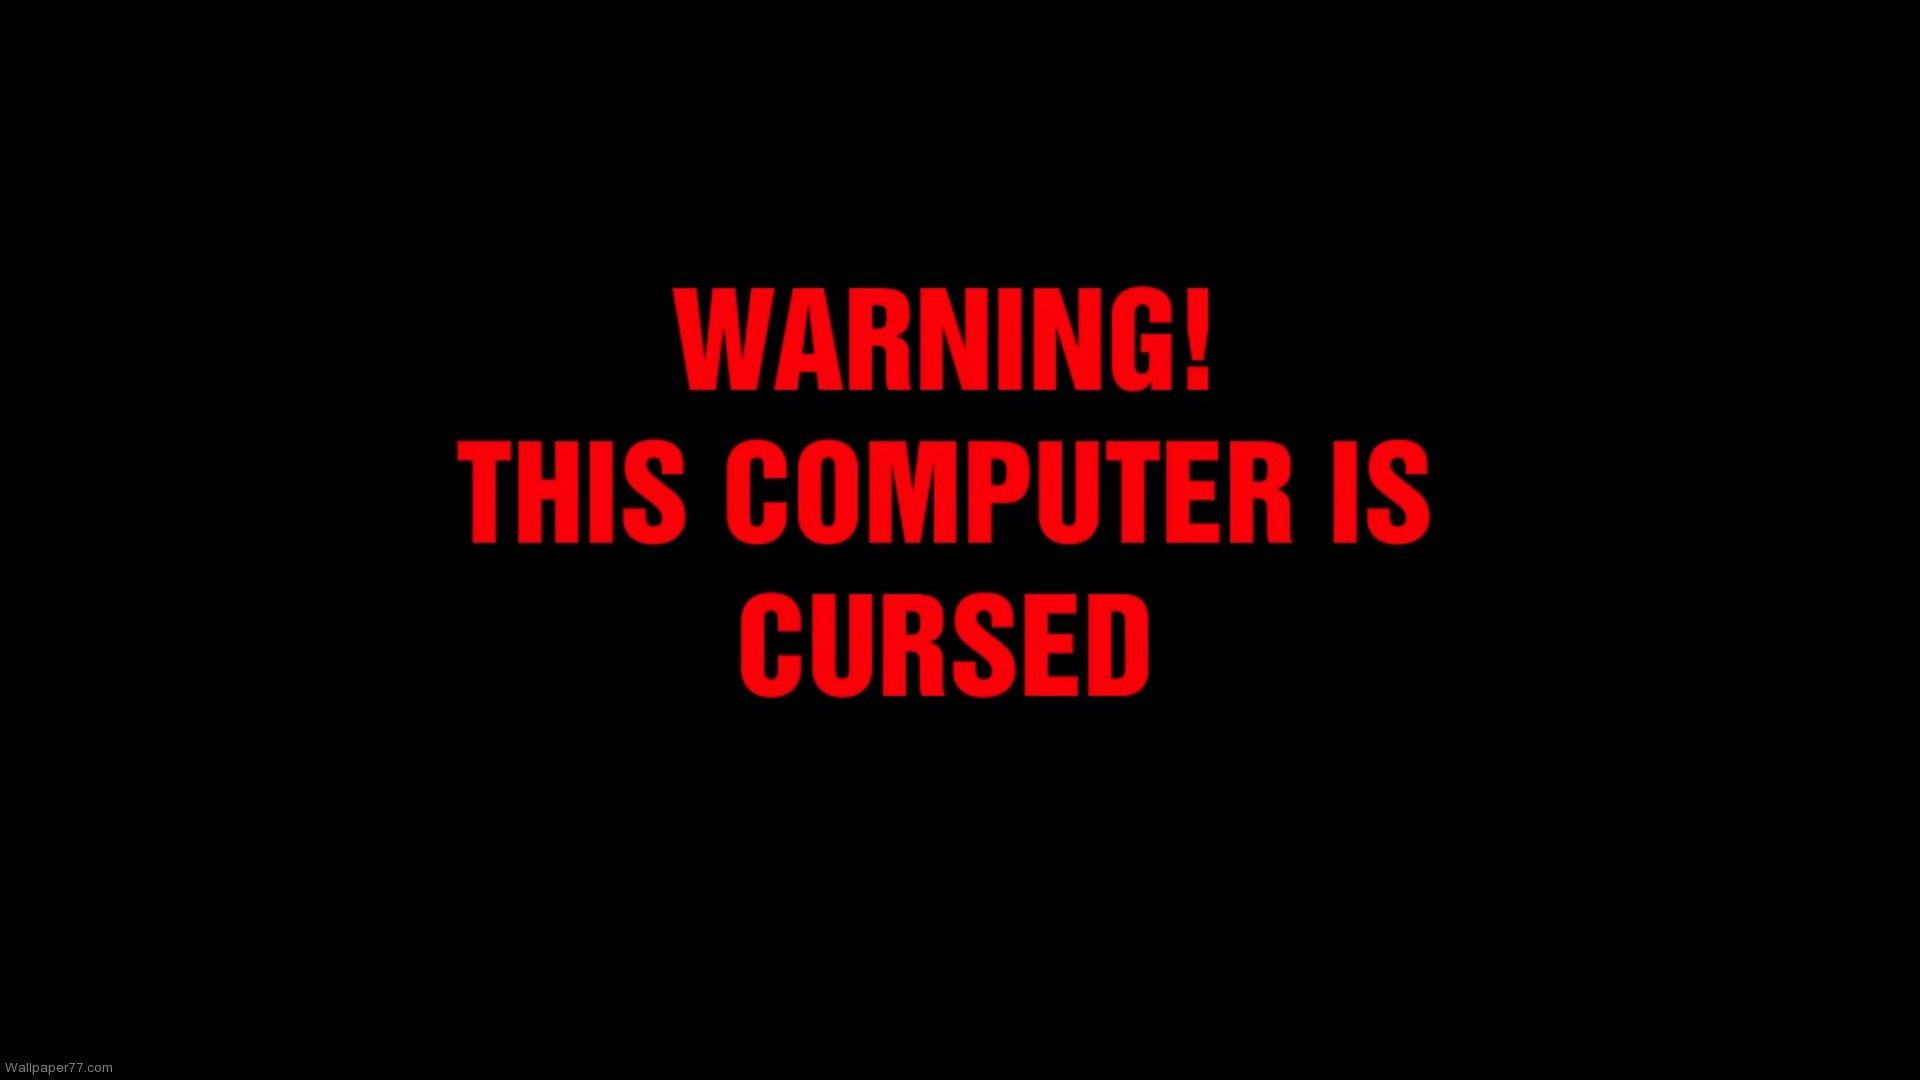 Computer Funny Wallpapers Computer Humor Funny Wallpapers